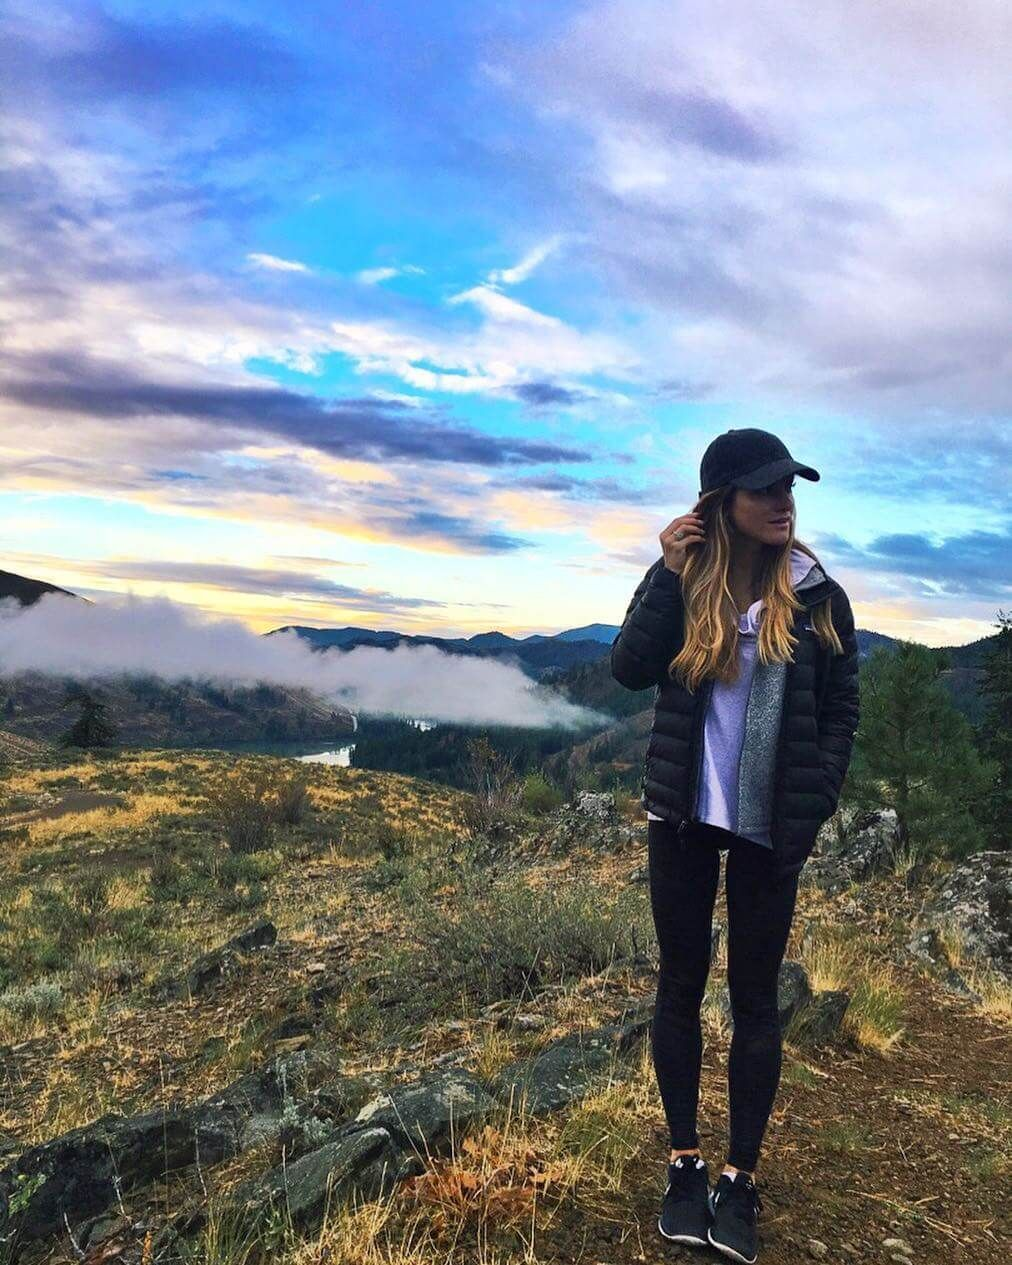 Recently on BTD - September Part 1 -  brighton the day overlooking sunset in patagonia vest and jacket brighton the day overlooking sunse - #backpackinggear #BTD #hiking #hikingbootswomen's #hikingoutfit #hikingoutfitfall #hikingoutfitsummer #hikingoutfitwinter #hikingoutfitwomen #hikingtips #hikingtrails #OutdoorTravel #part #recently #september